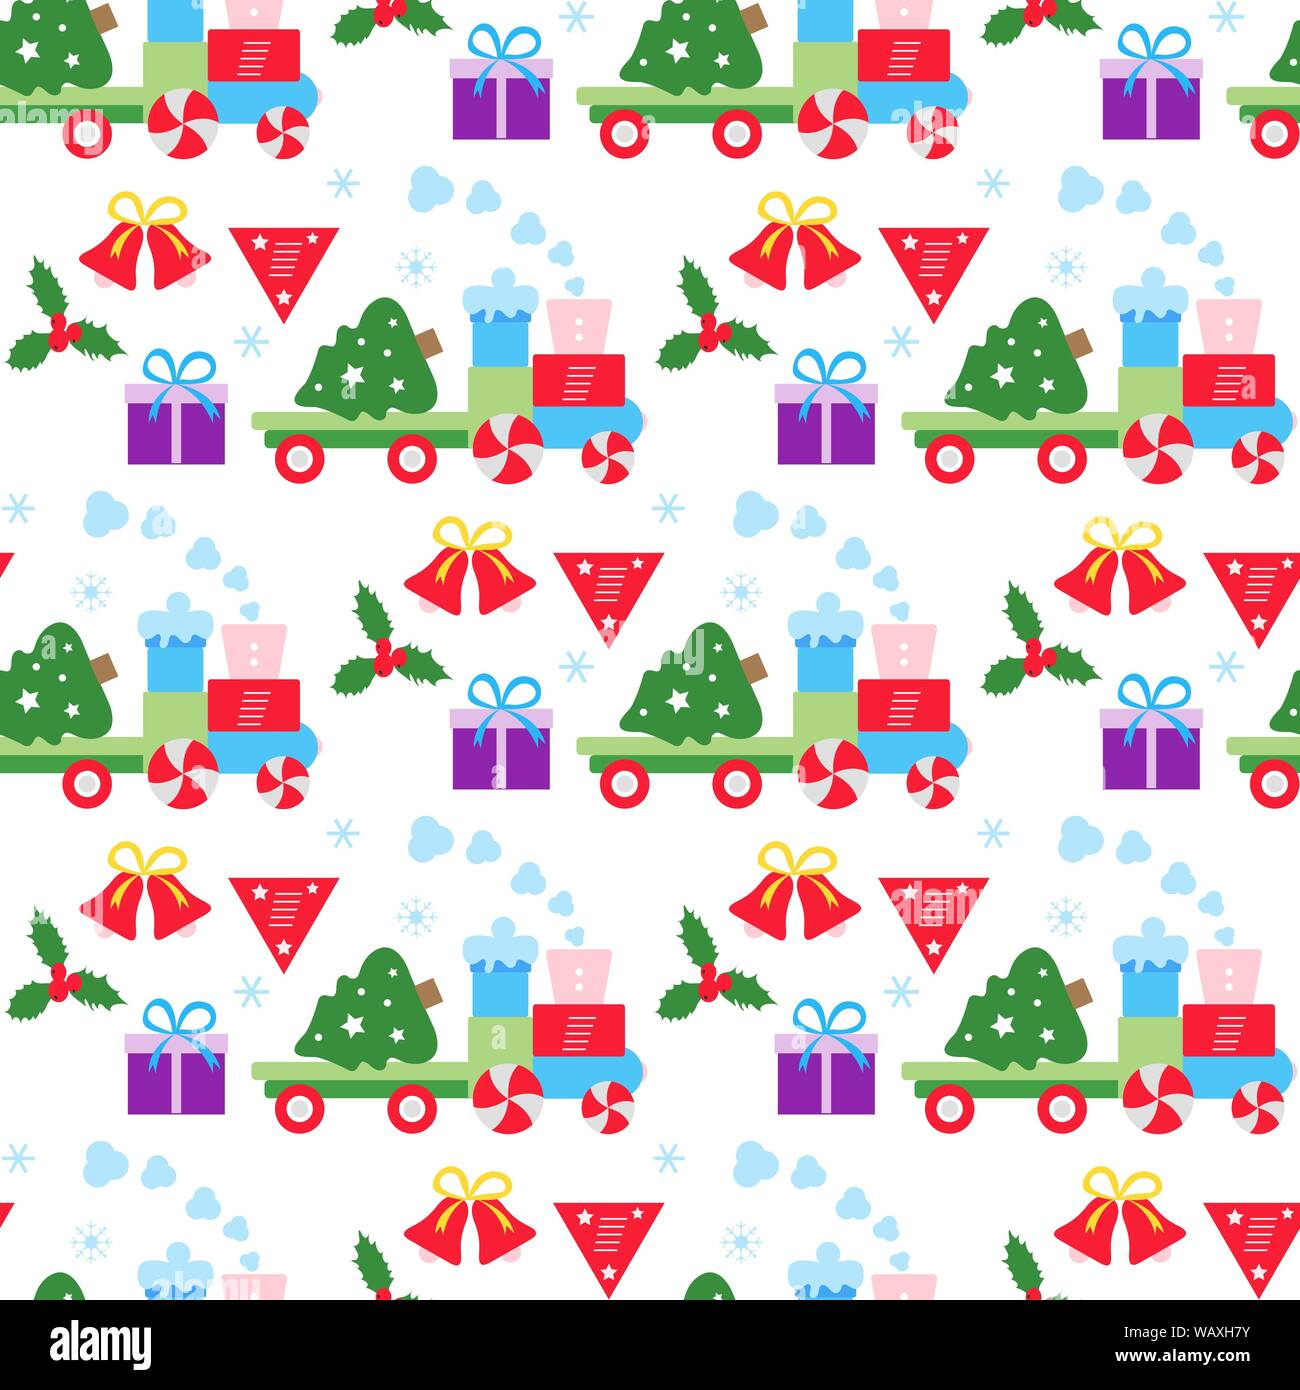 Christmas Fabric For 2020 Happy new year 2020, Merry Christmas vector seamless pattern with